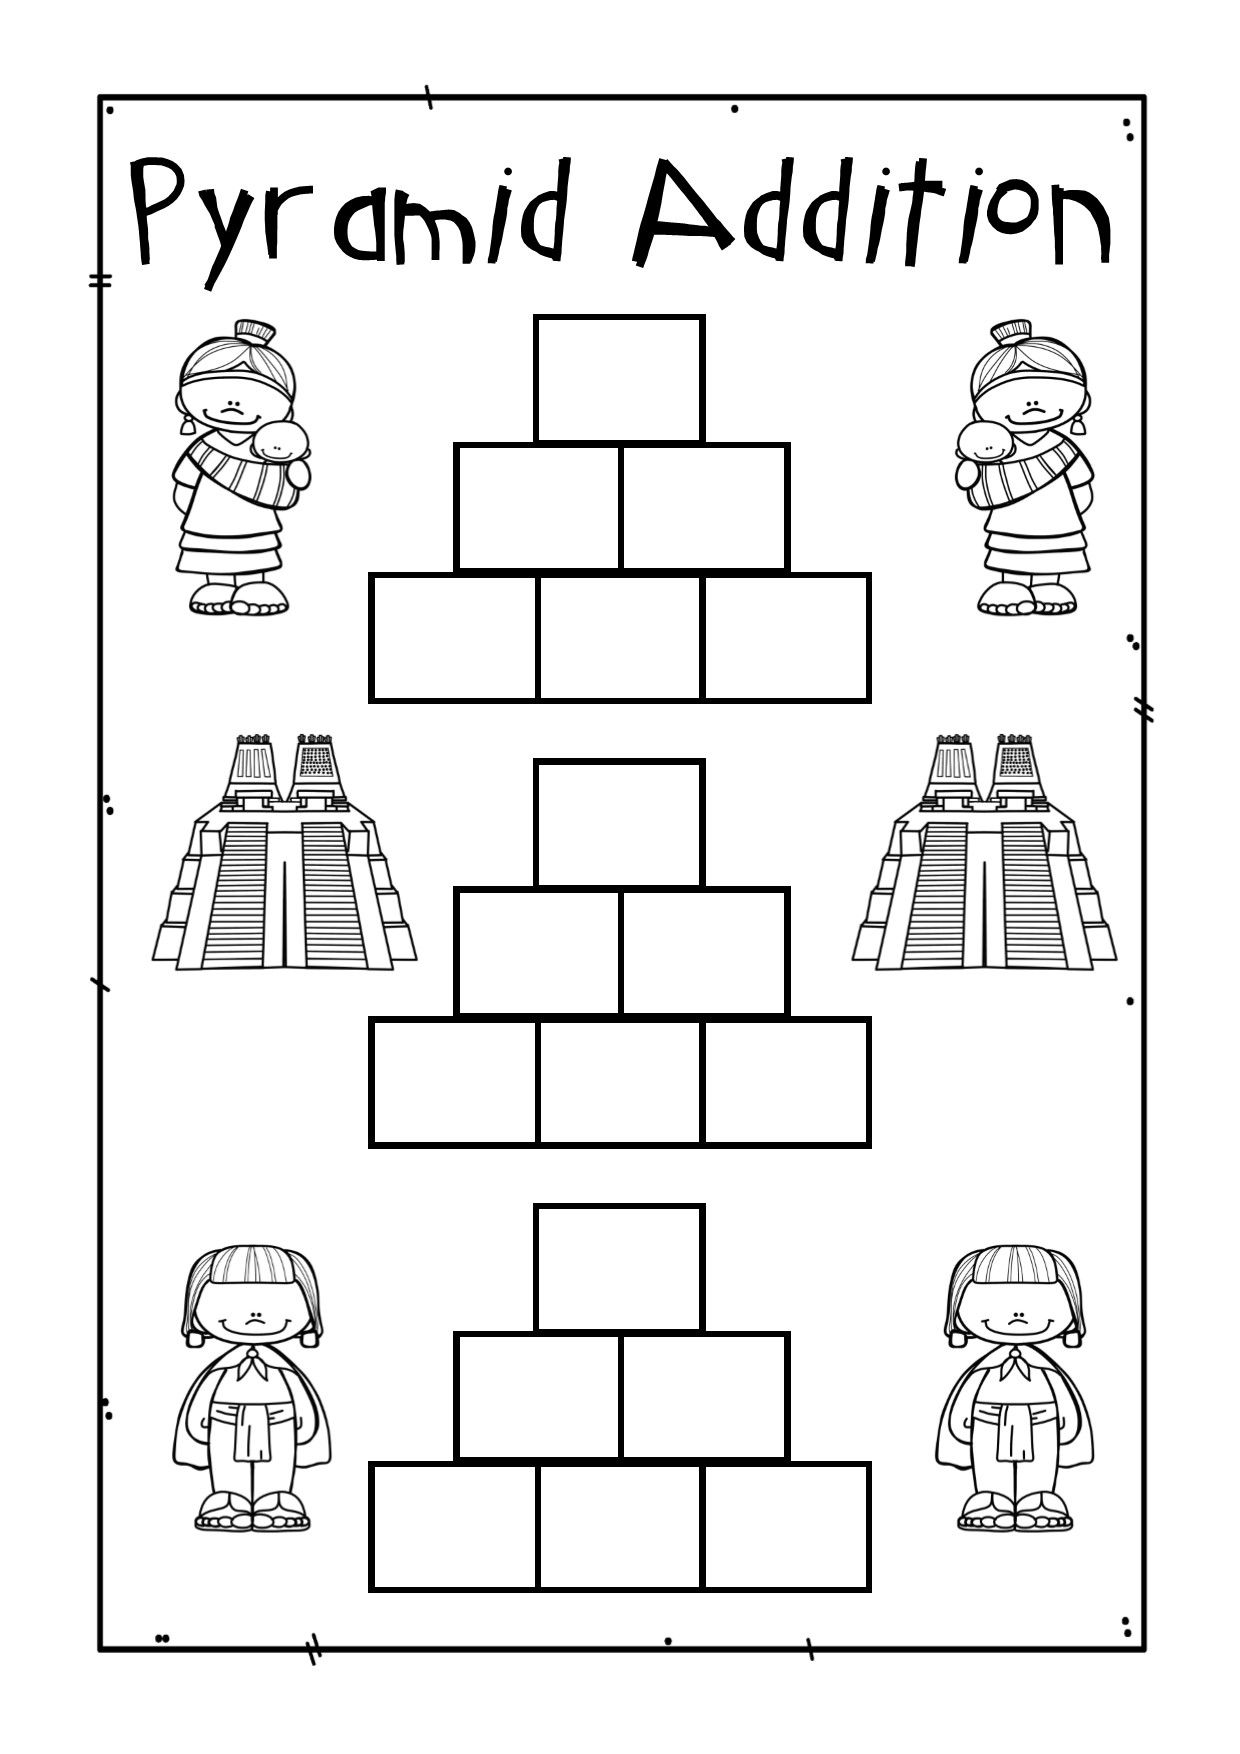 Addition Pyramids Blank and Ready to Go in Math Worksheets – Maths Pyramid Worksheet